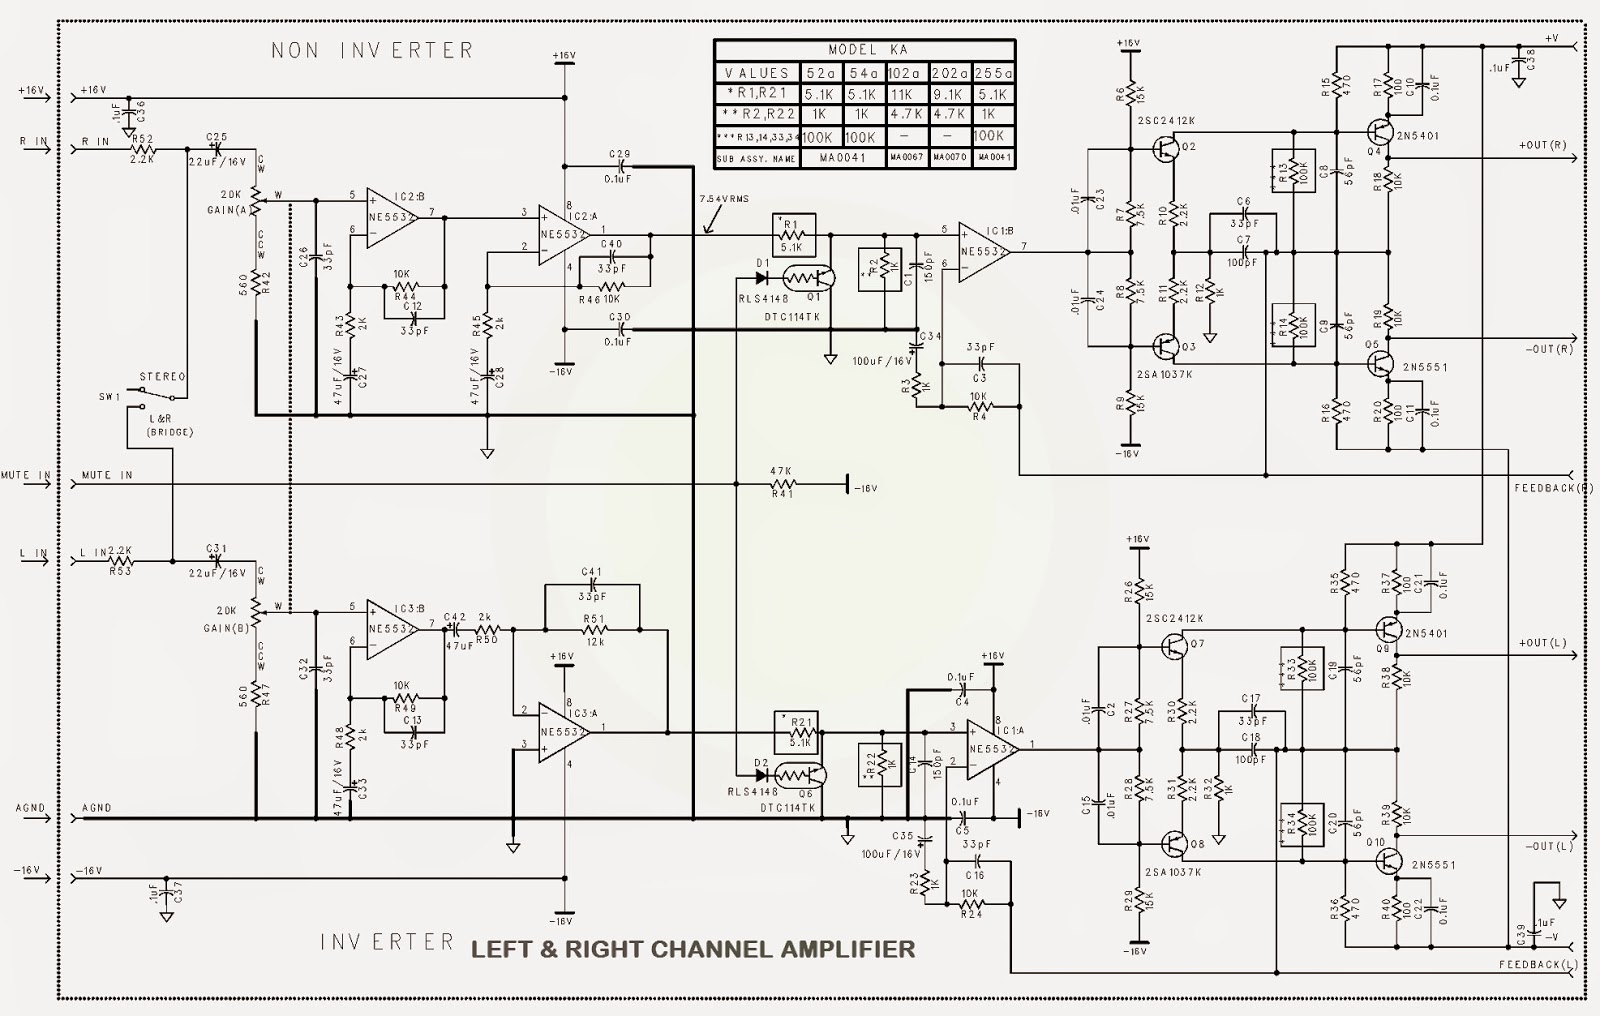 Infinity Ps 12 Wiring Diagram. Diagrams. Auto Parts